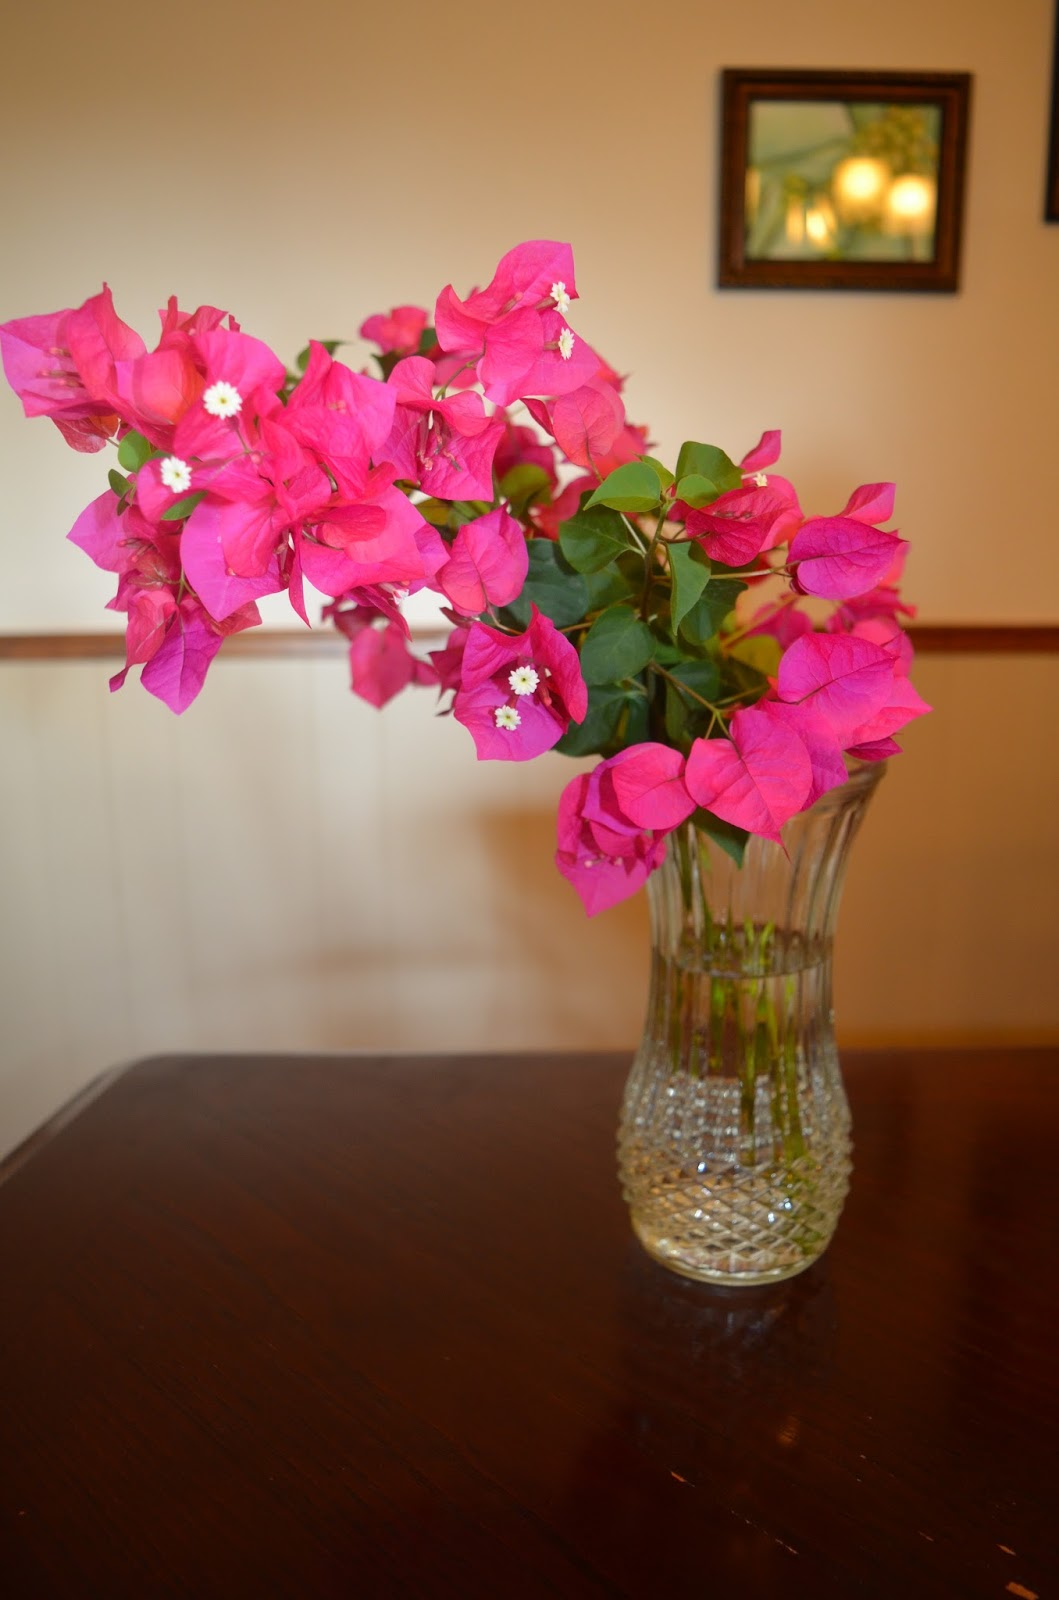 Rebeccas texas garden in a vase bits of bougainvillea the bougainvillea is native to south america and thrives in the heat and sun in central texas it dies back to the ground in the winter but always returns reviewsmspy